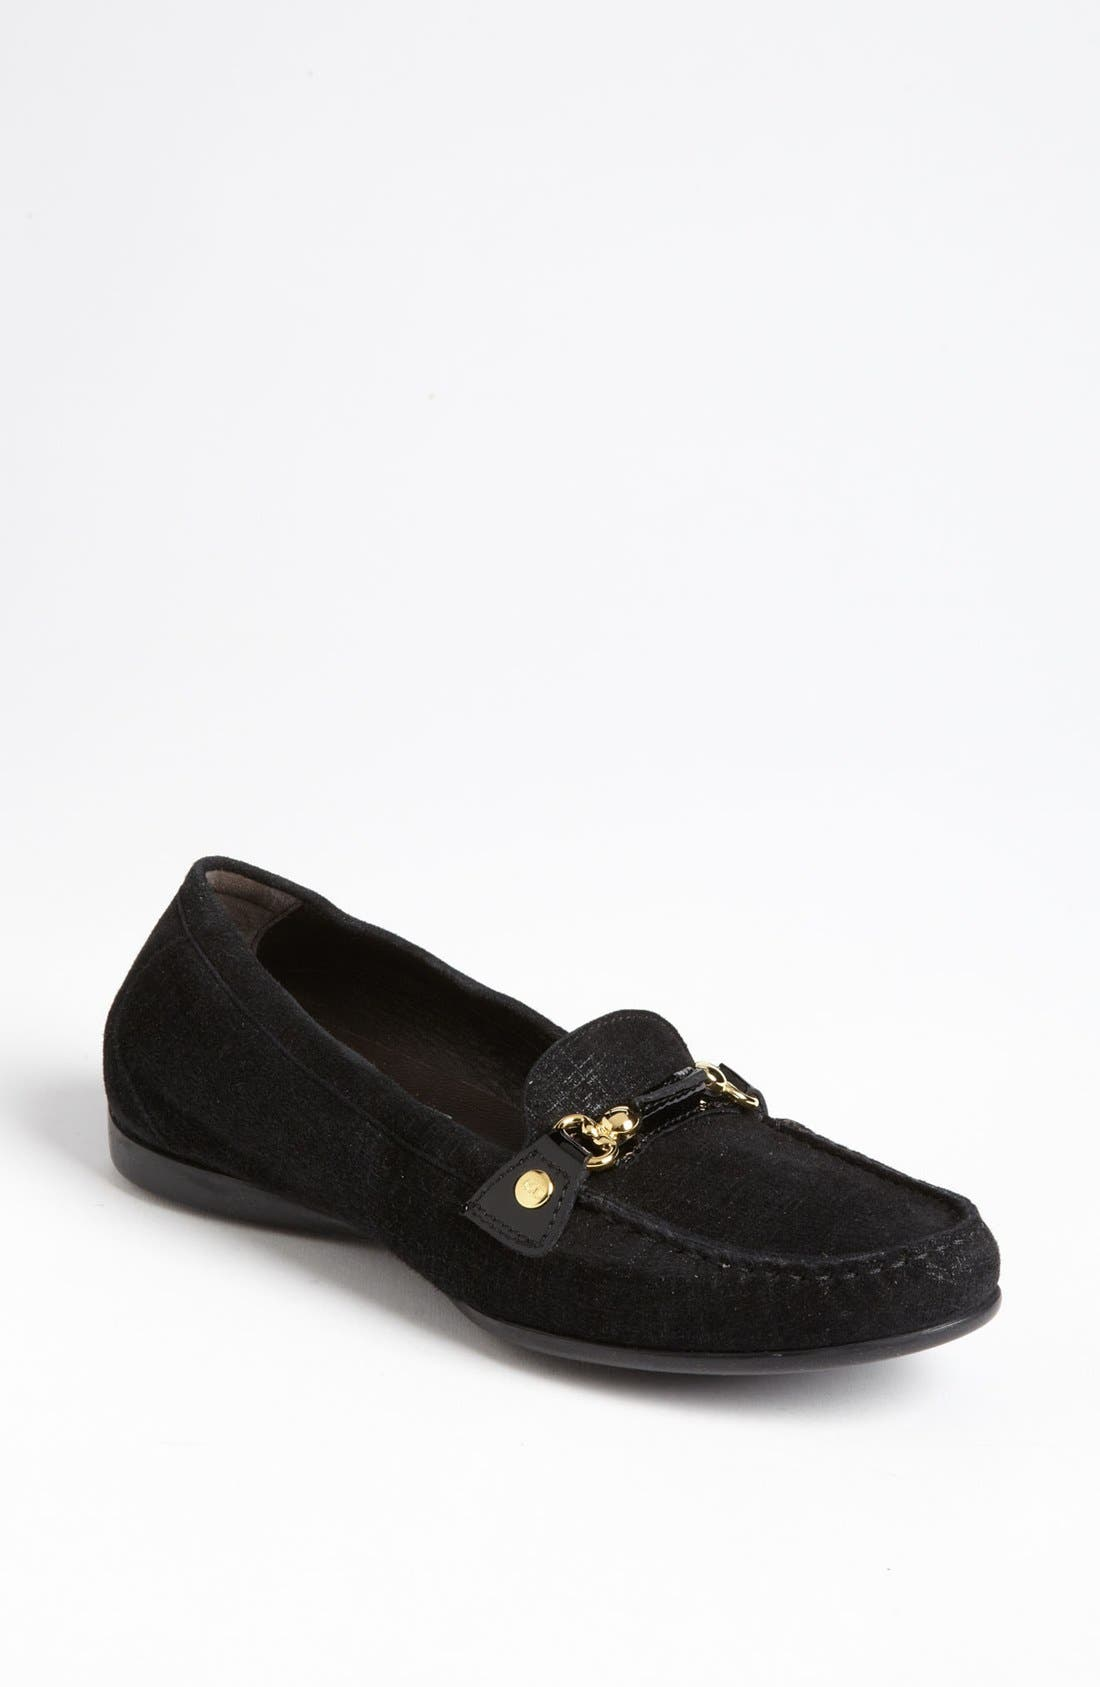 Alternate Image 1 Selected - Attilio Giusti Leombruni Moccasin